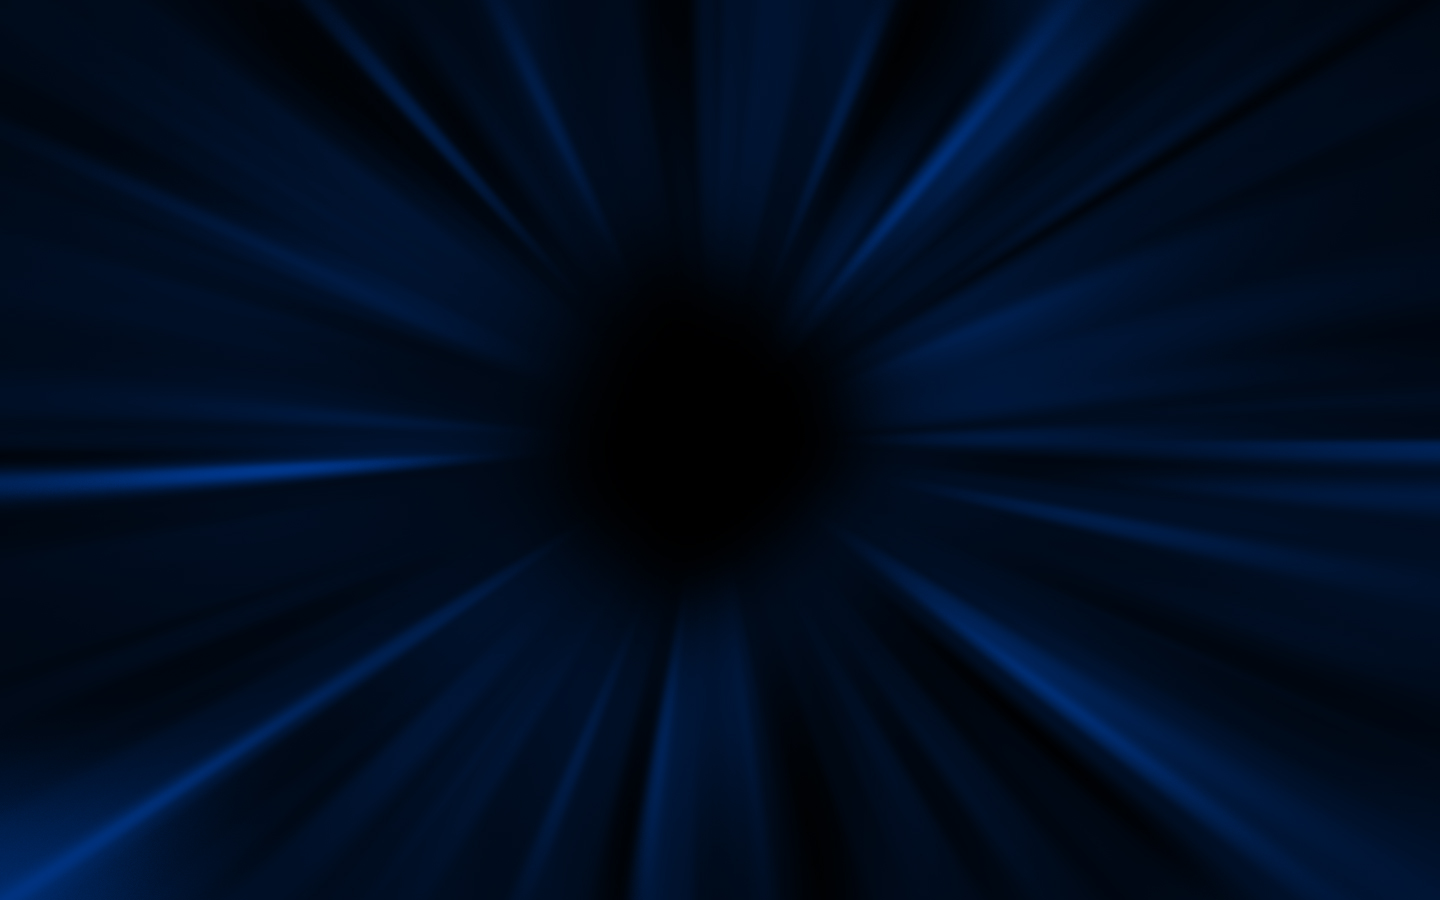 Plain Dark Blue Wallpaper wallpaper wallpaper hd background 1440x900